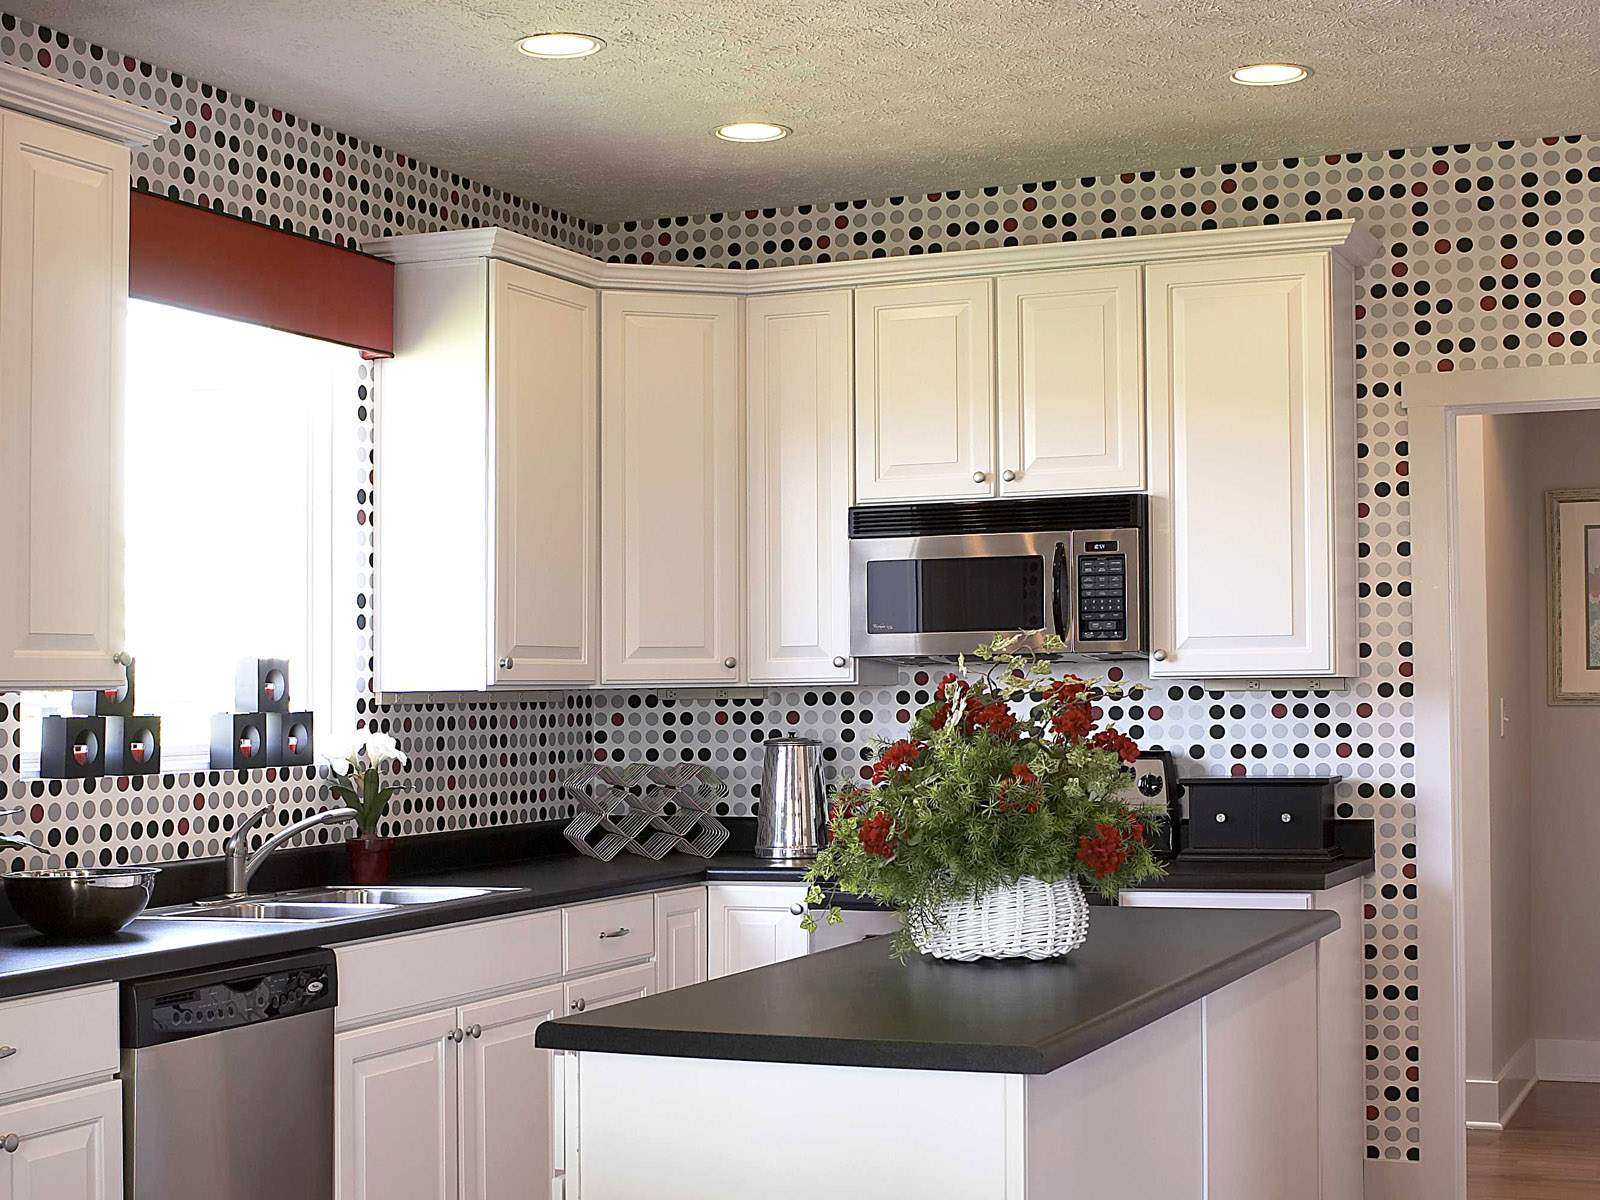 kitchen design ideas beautiful kitchen design ideas kitchen design ideas beautiful photo 3